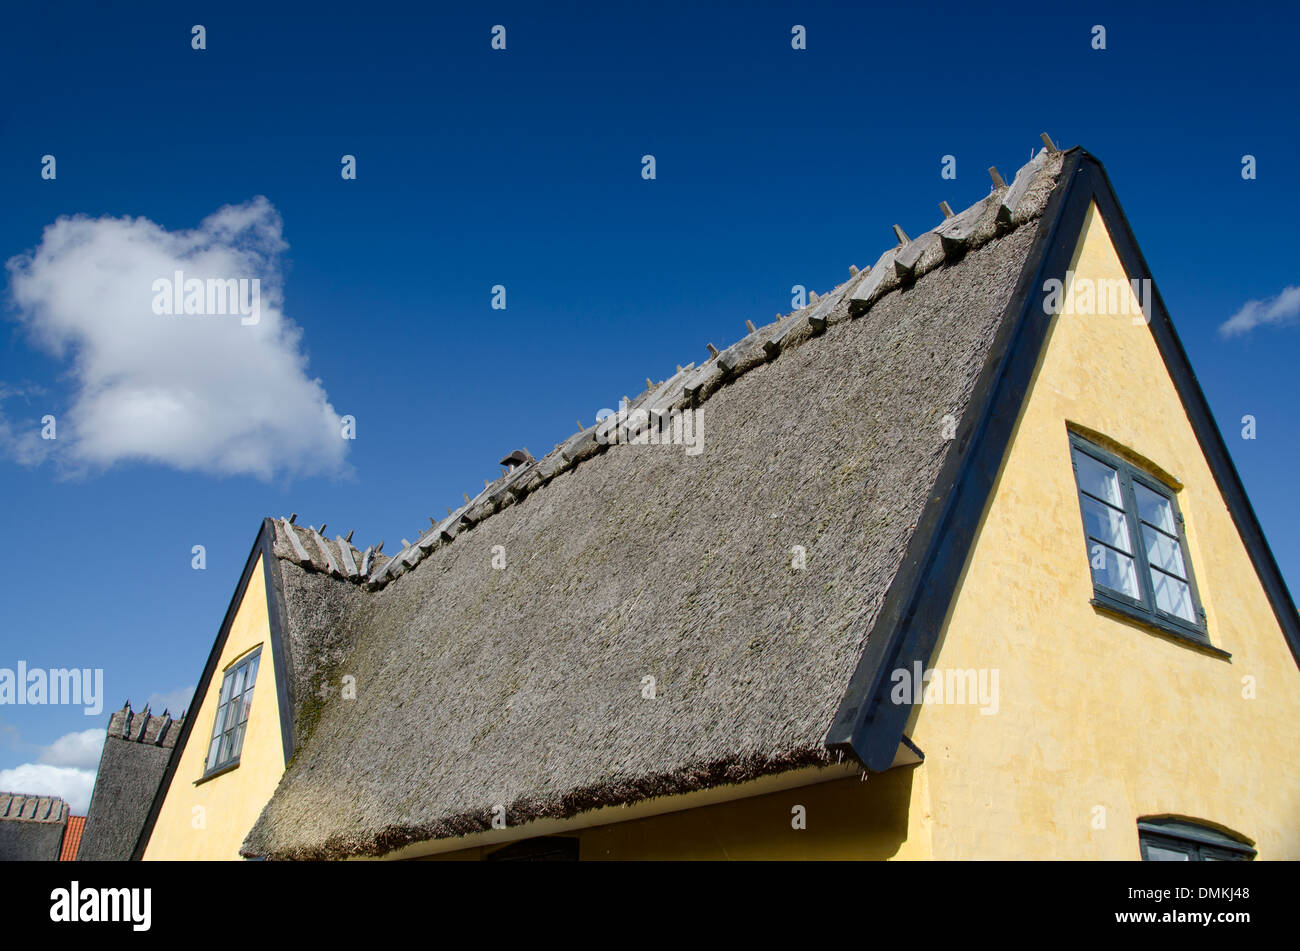 Old Thatched Roof Viking House Stock Photos Amp Old Thatched